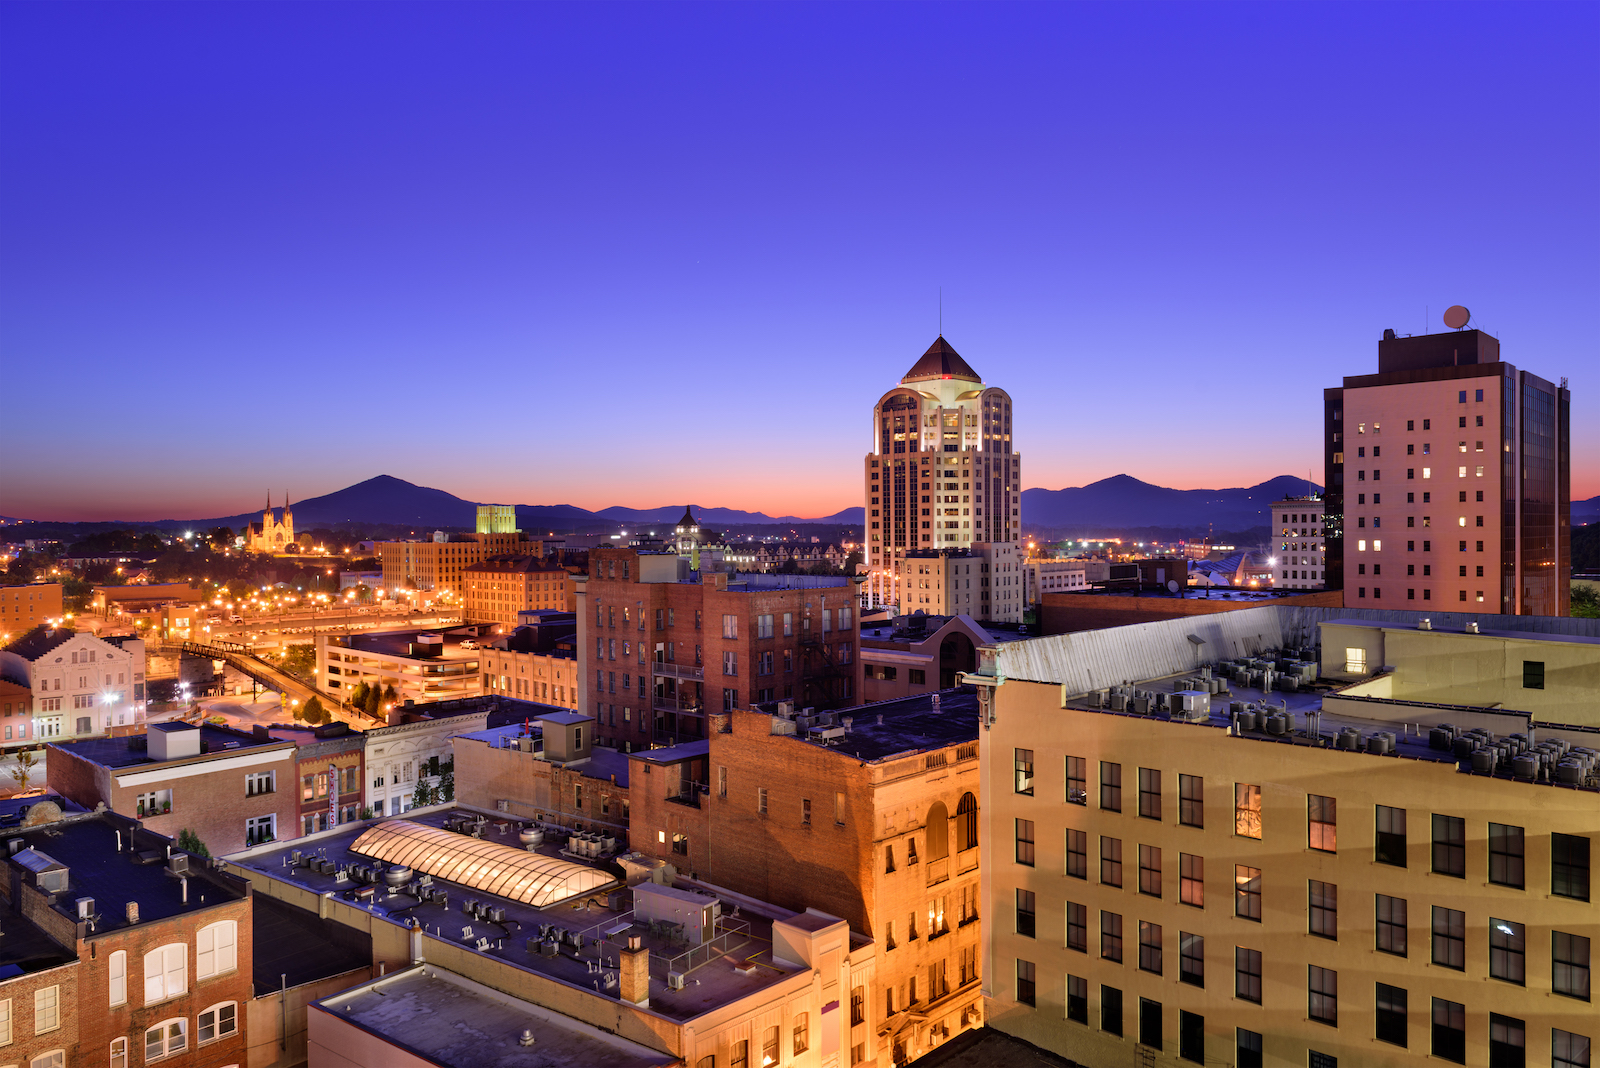 Roanoke, Virginia.